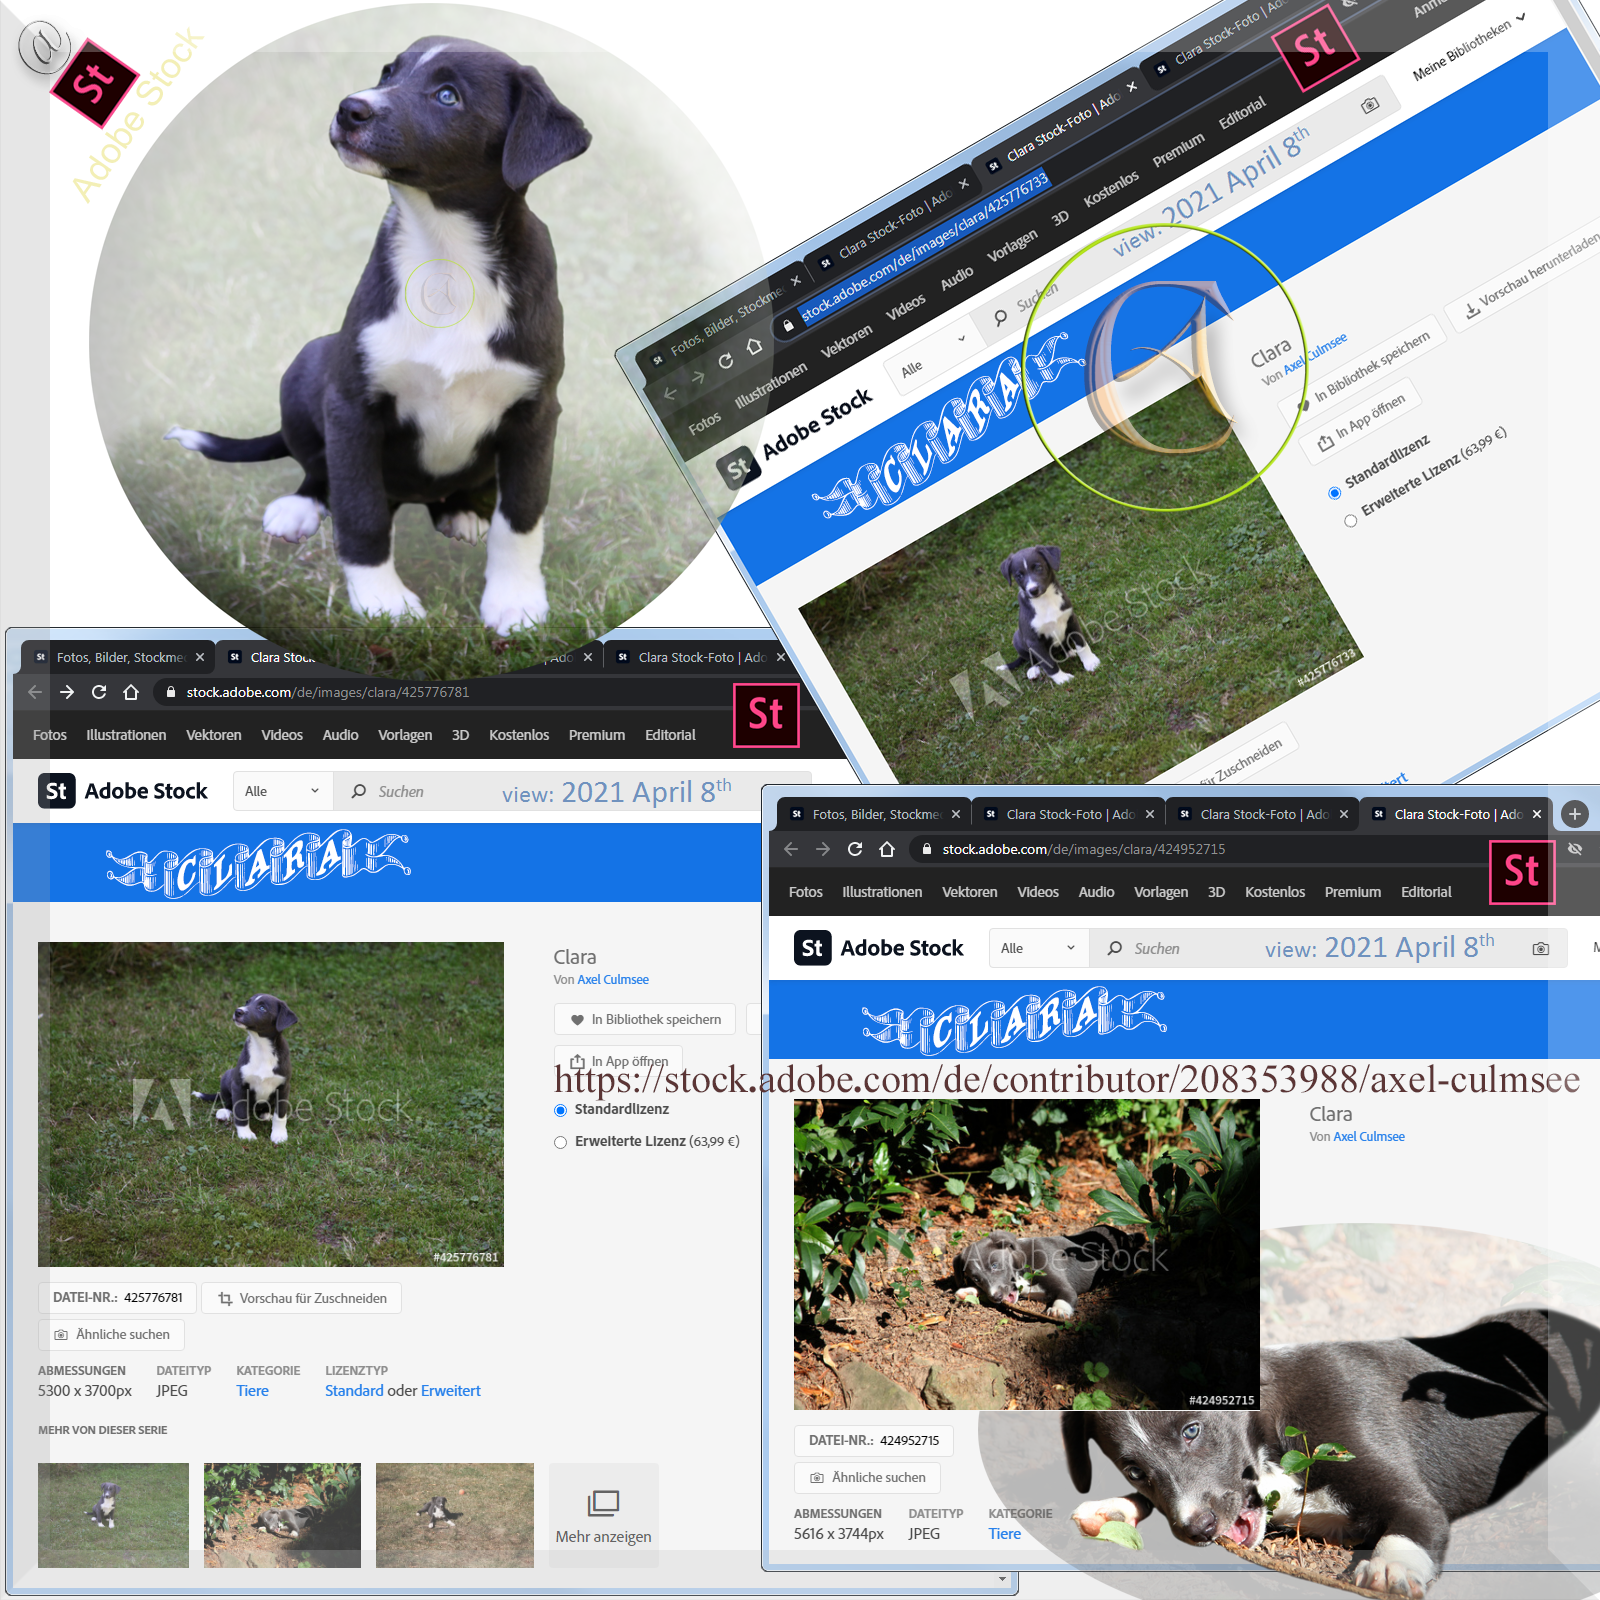 Clara Aussiedor 8 up to 10 weeks at Adobe Stock available via searching for Australian Shepherd hybrid with detail